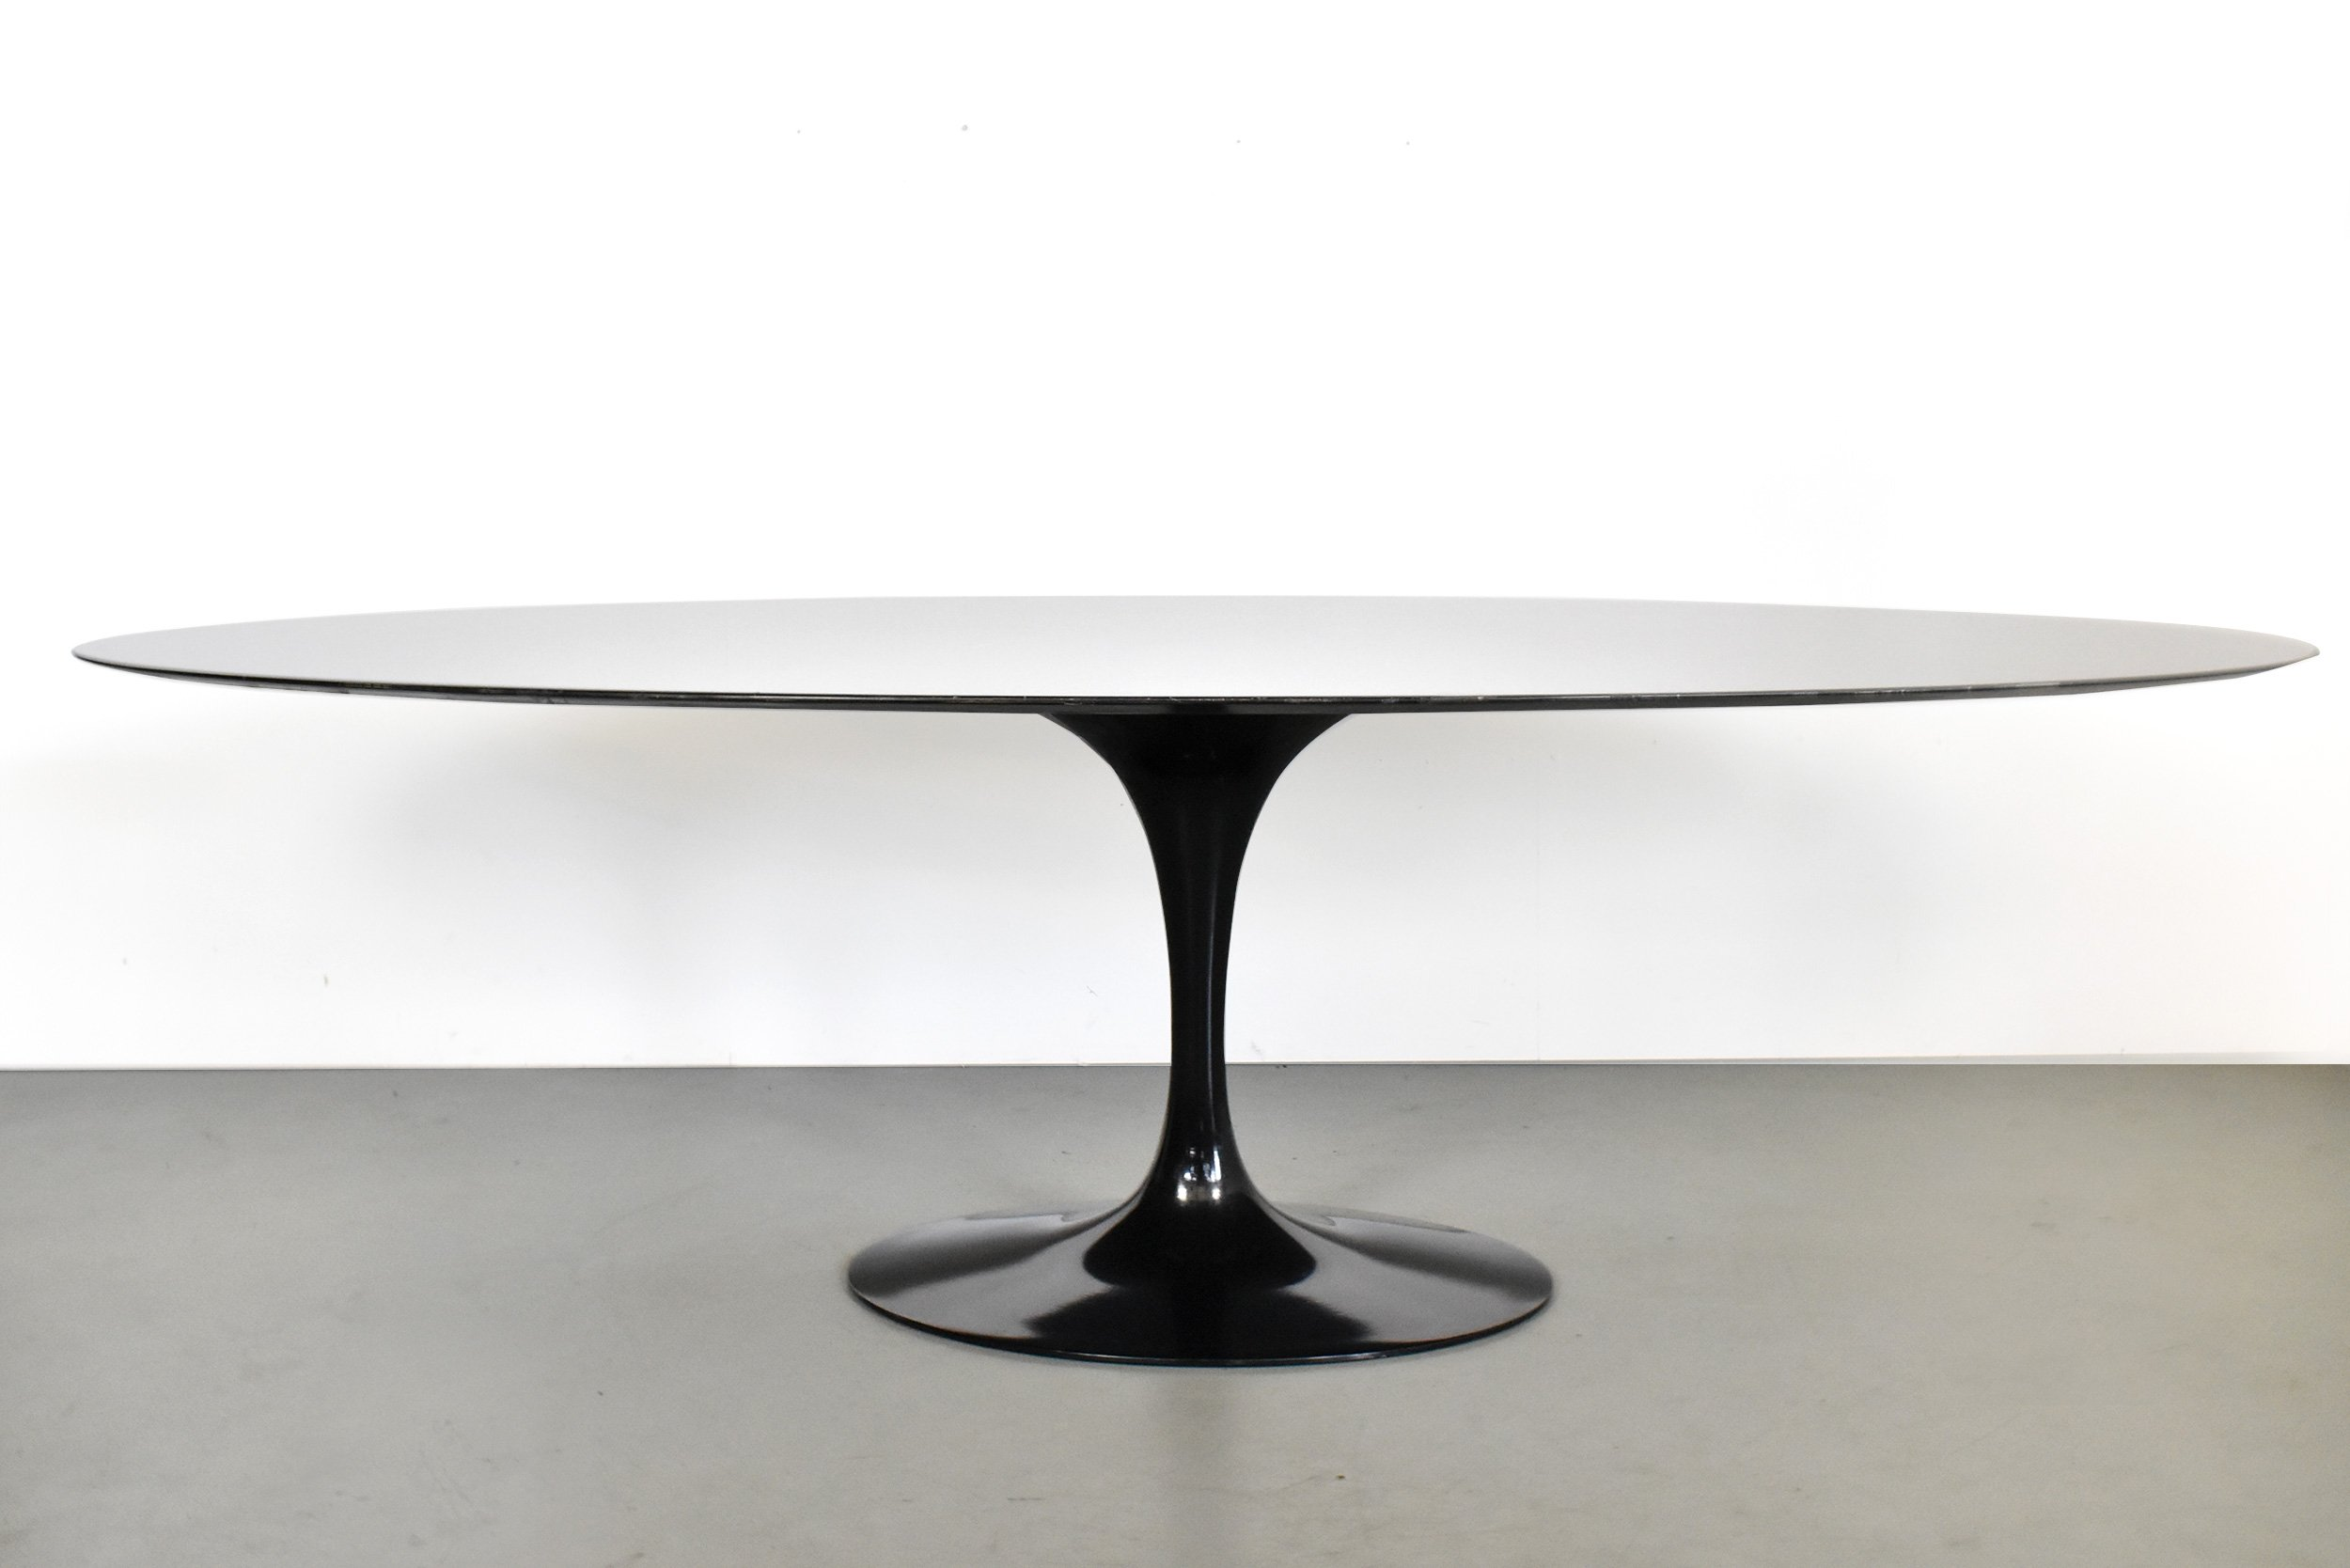 Picture of: Big Black Marble Oval Tulip Table By Eero Saarinen For Knoll 1990s 114030